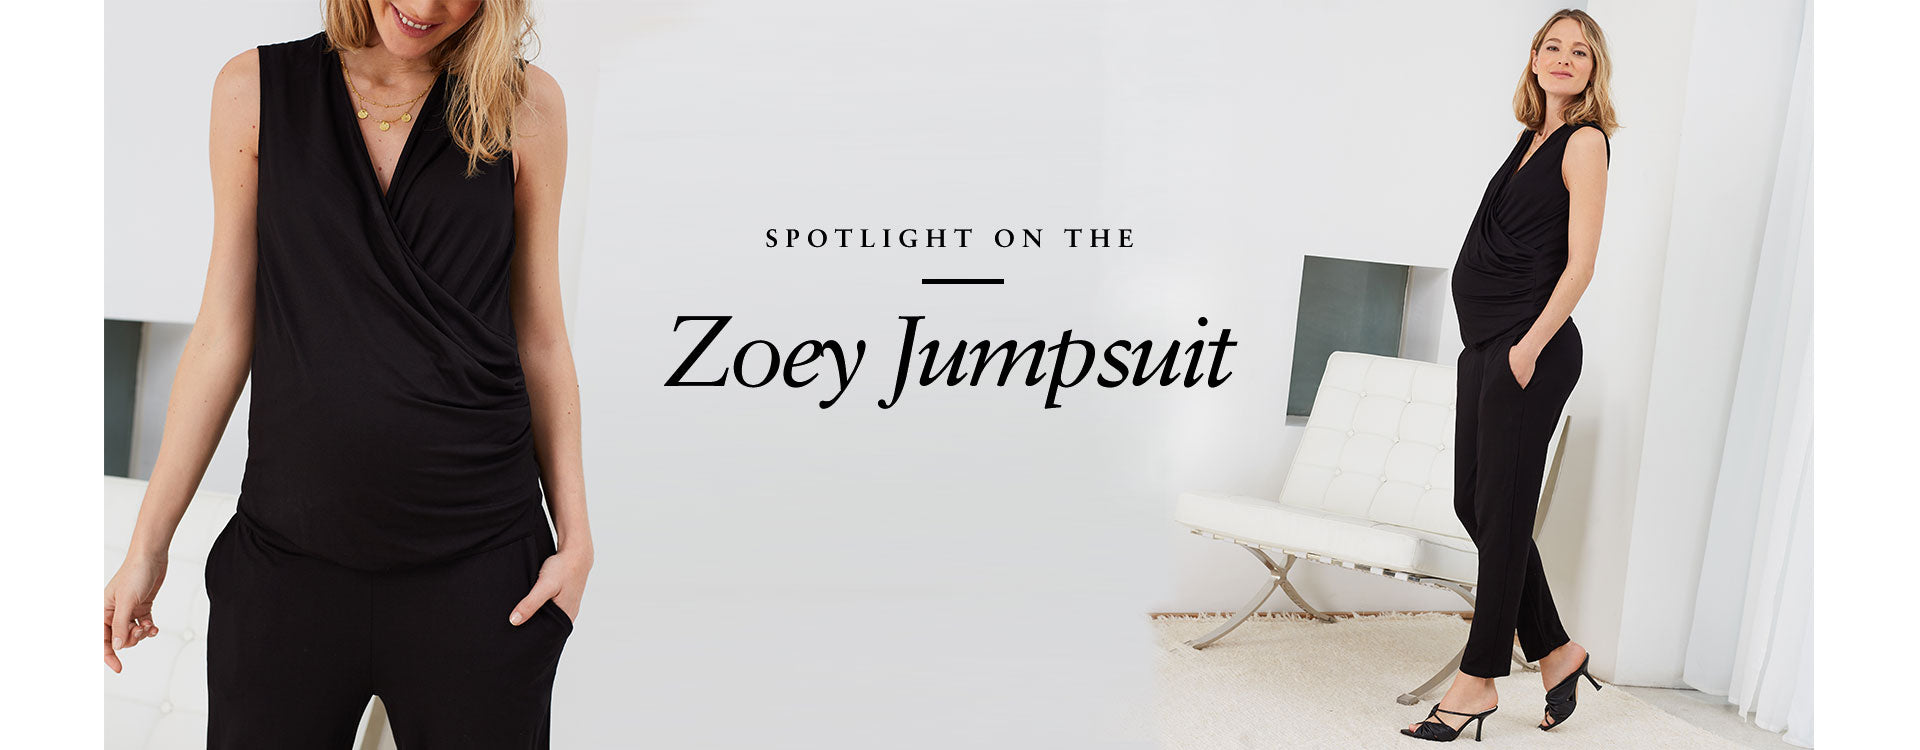 Spotlight on the Zoey Jumpsuit